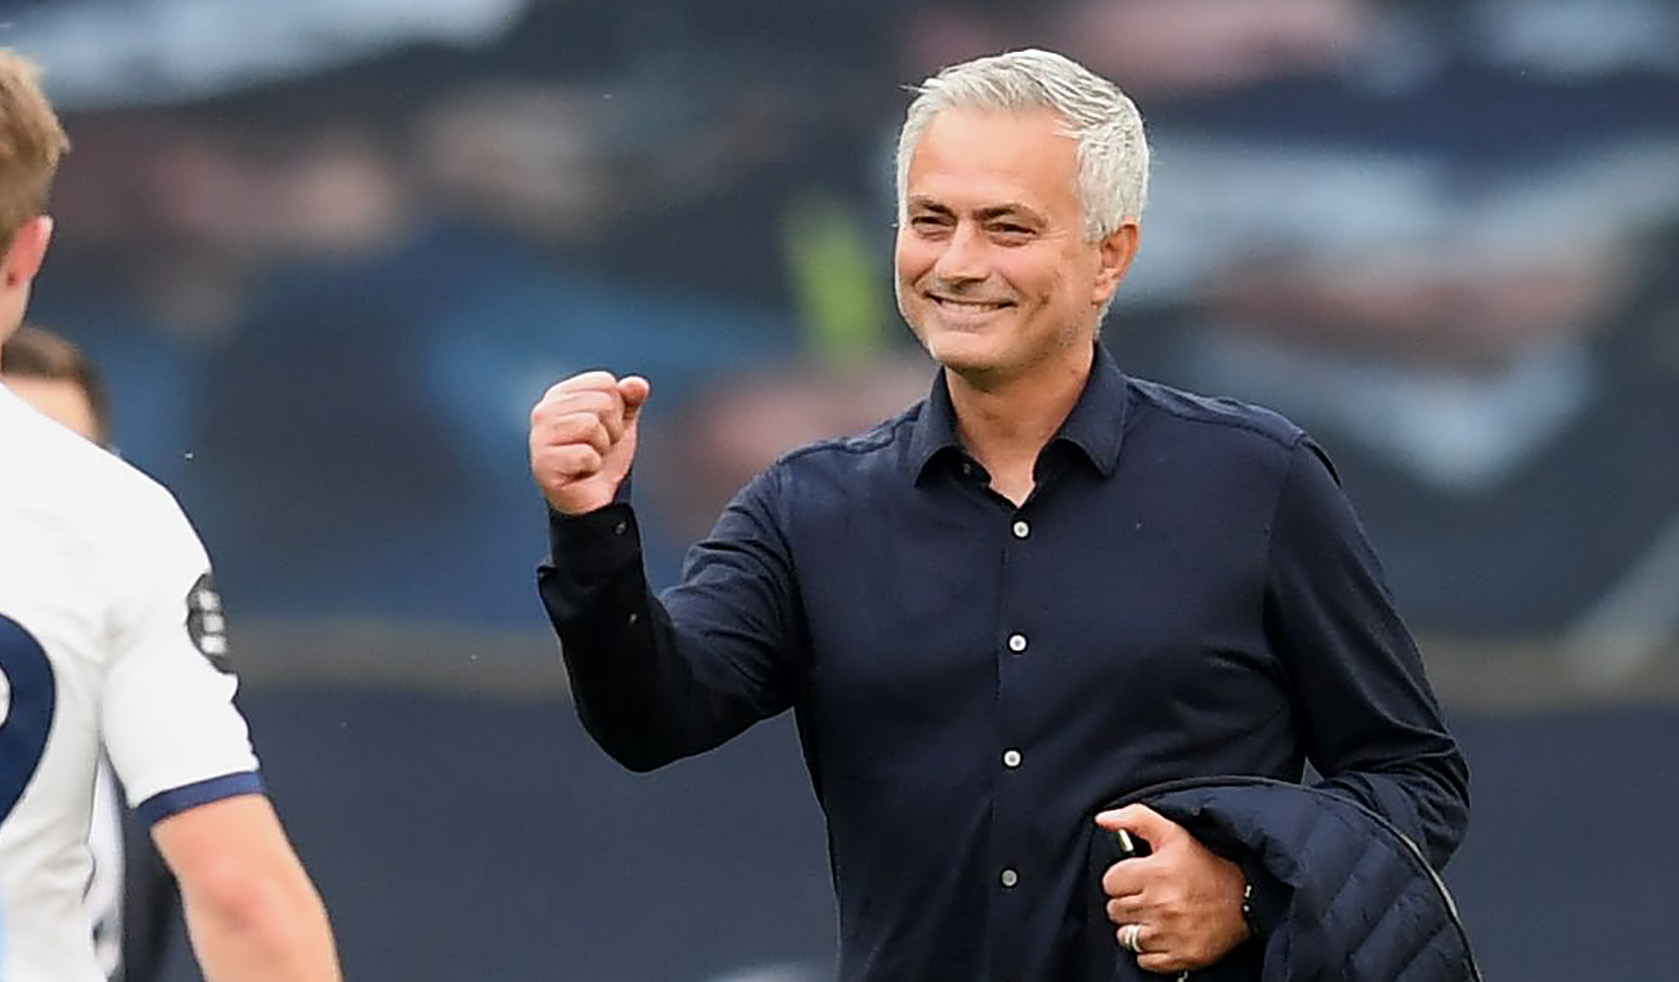 Premier League: Mourinho Continues Dominance Over Arsenal In Spurs' Comeback Win